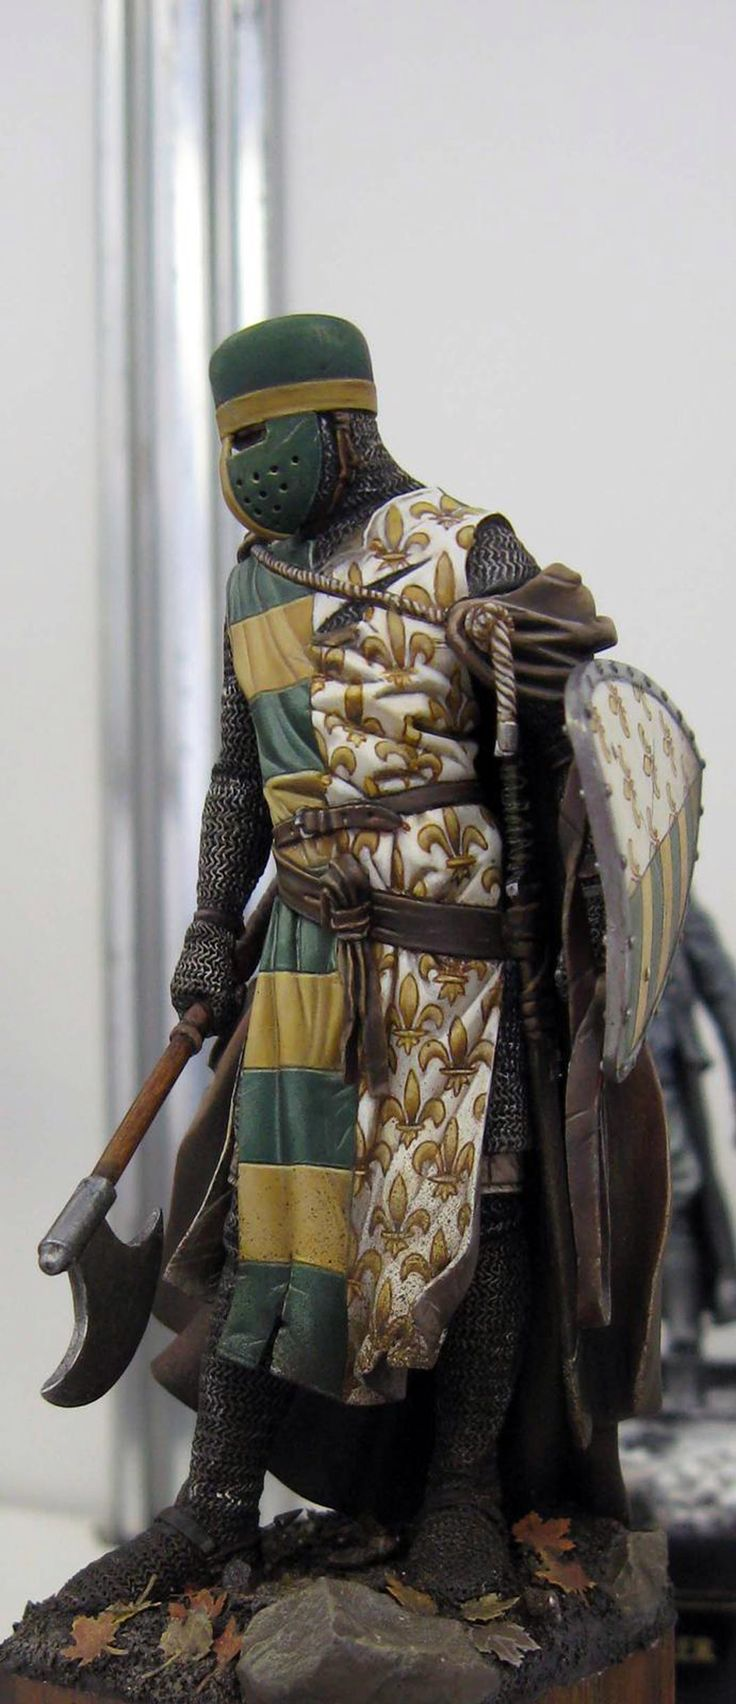 Neverending Knights #Medieval #Historical